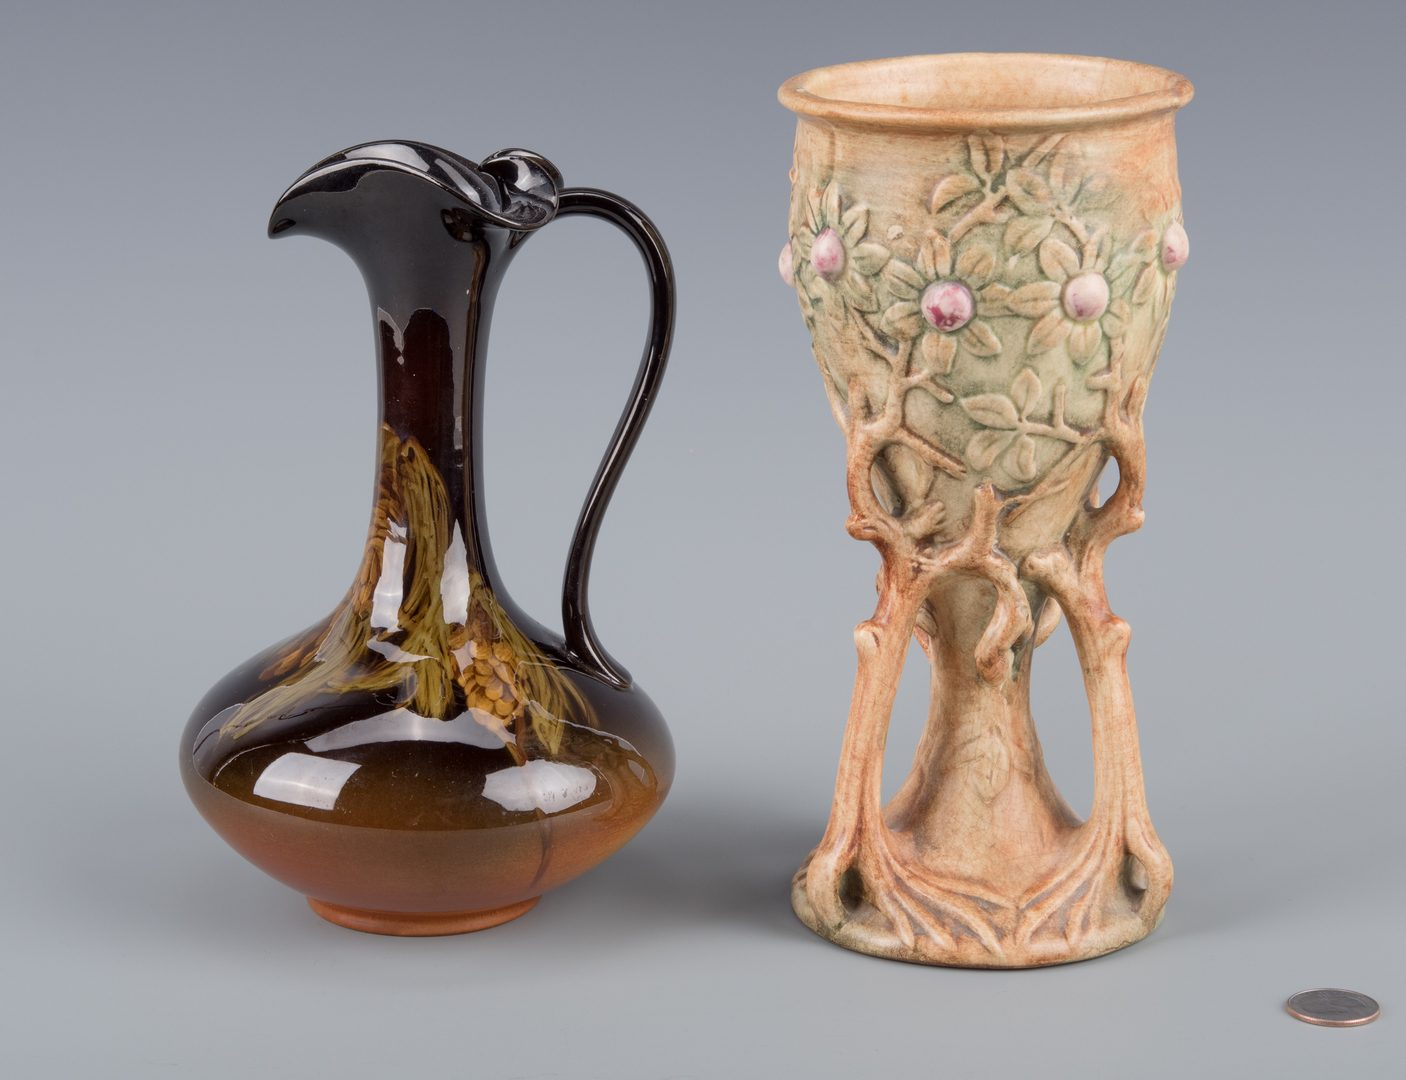 Lot 415: Weller Chalice & Rookwood Ewer Pottery